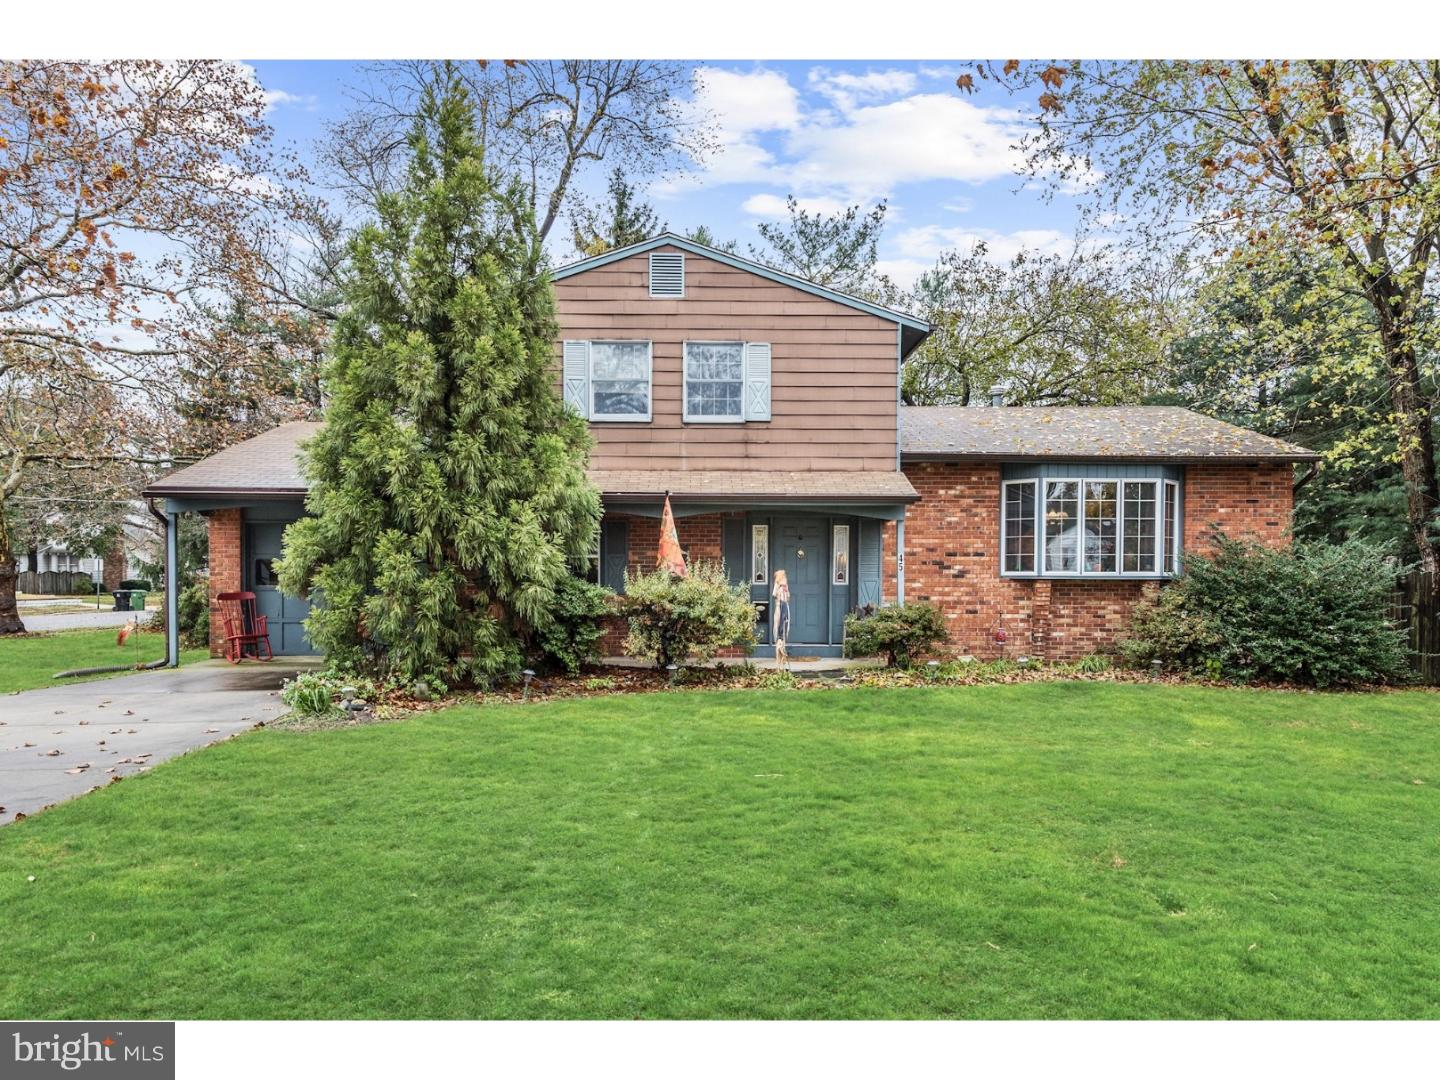 Single Family Home for Sale at 45 S WOODBURY Road Pitman, New Jersey 08071 United StatesMunicipality: Pitman